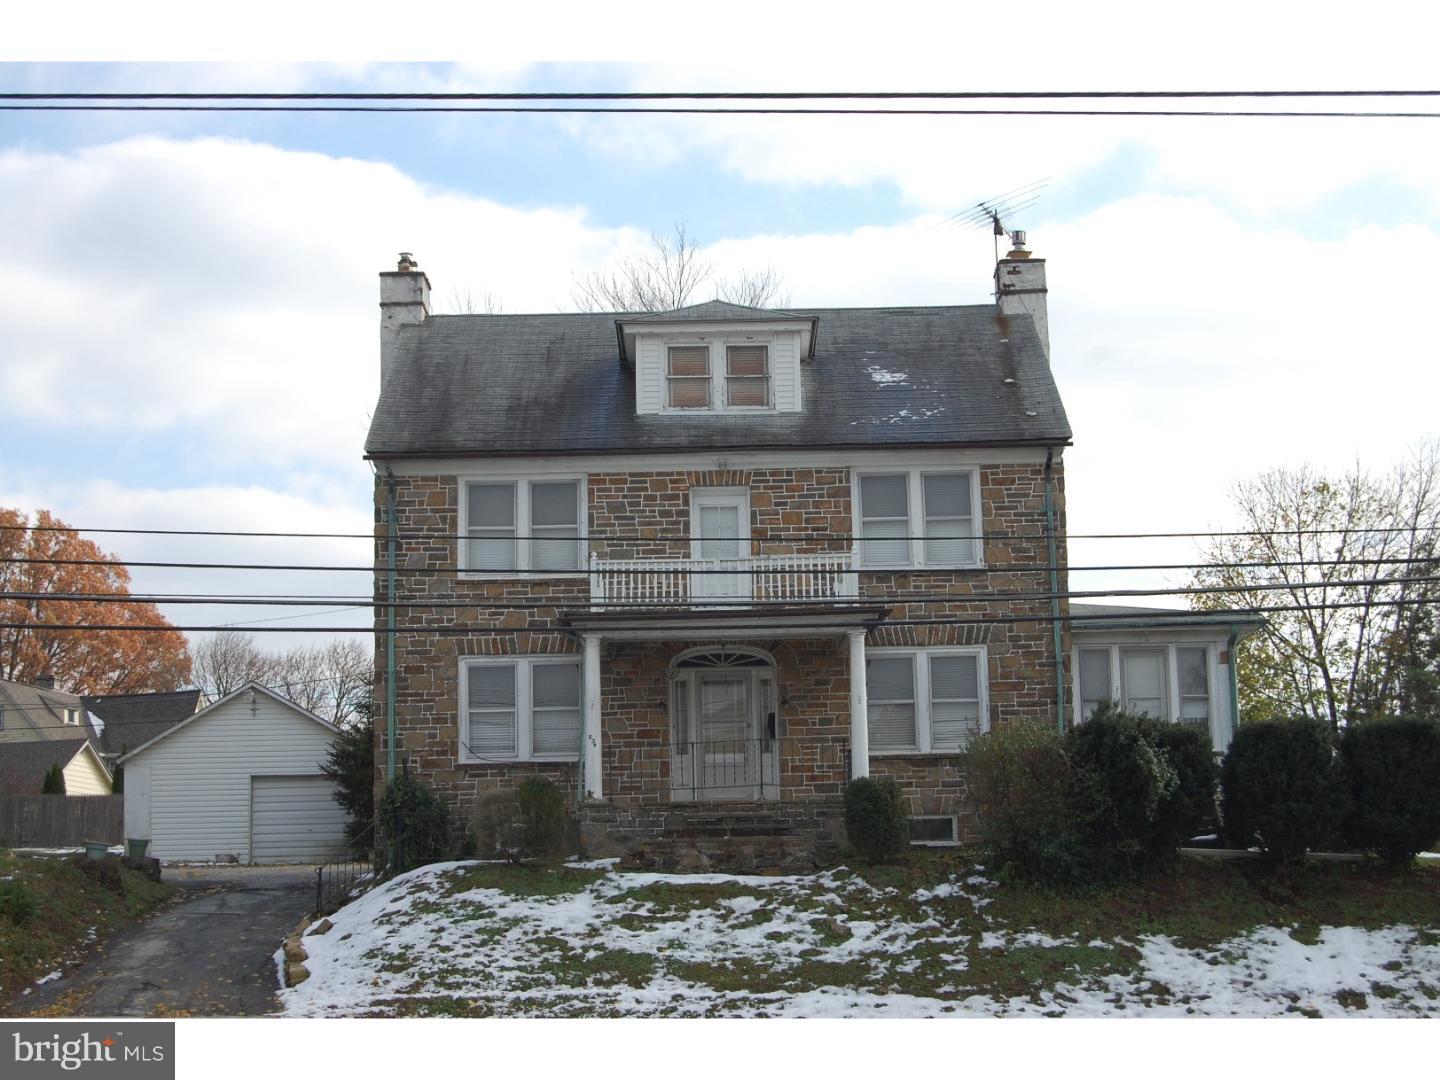 834 Paoli Pike West Chester, PA 19380